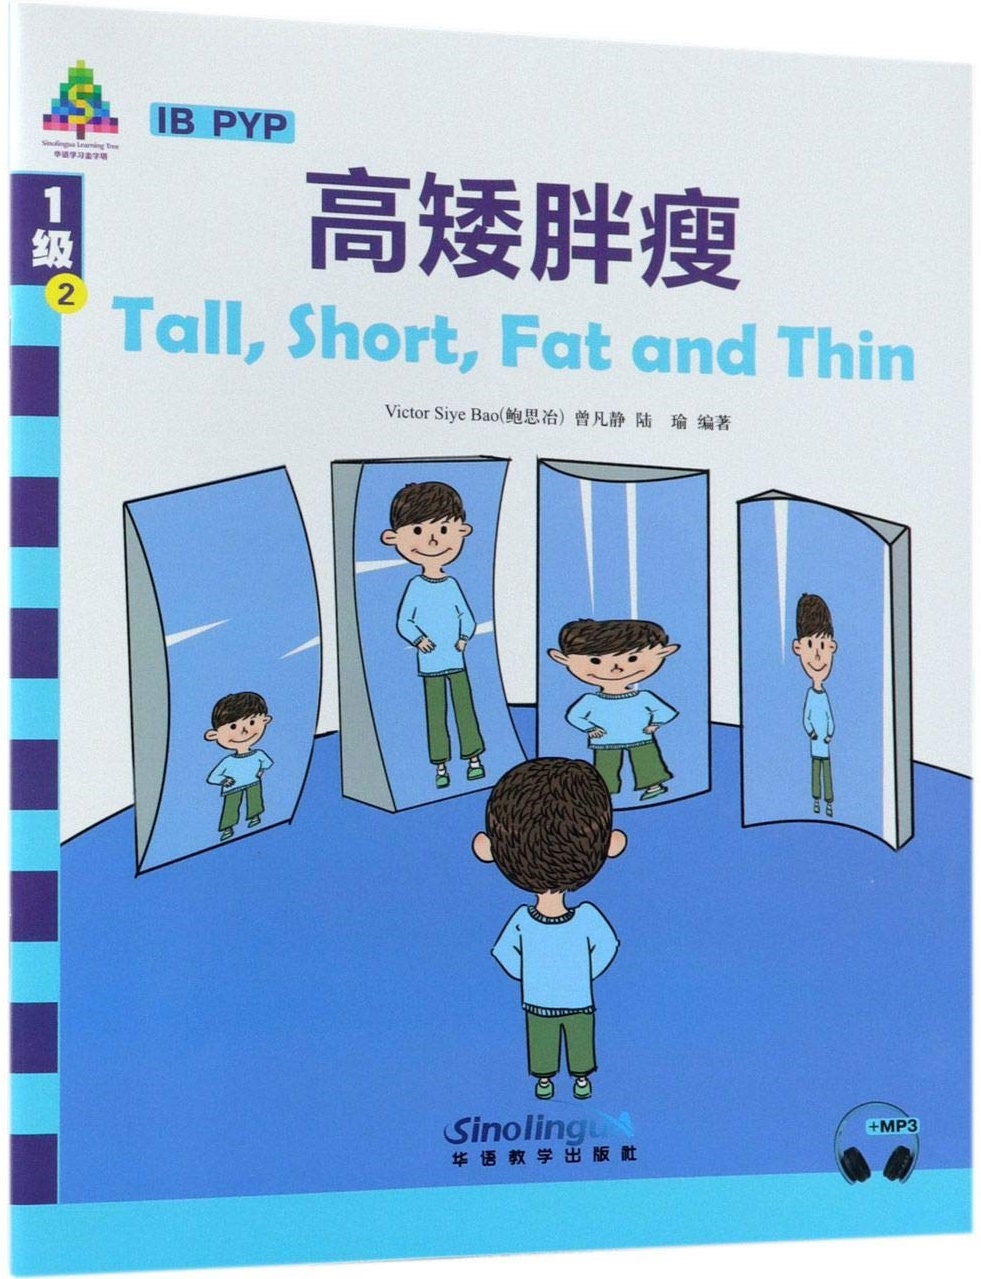 Tall, Short, Fat and Thin - Sinolingua Reading Tree for IB PYP